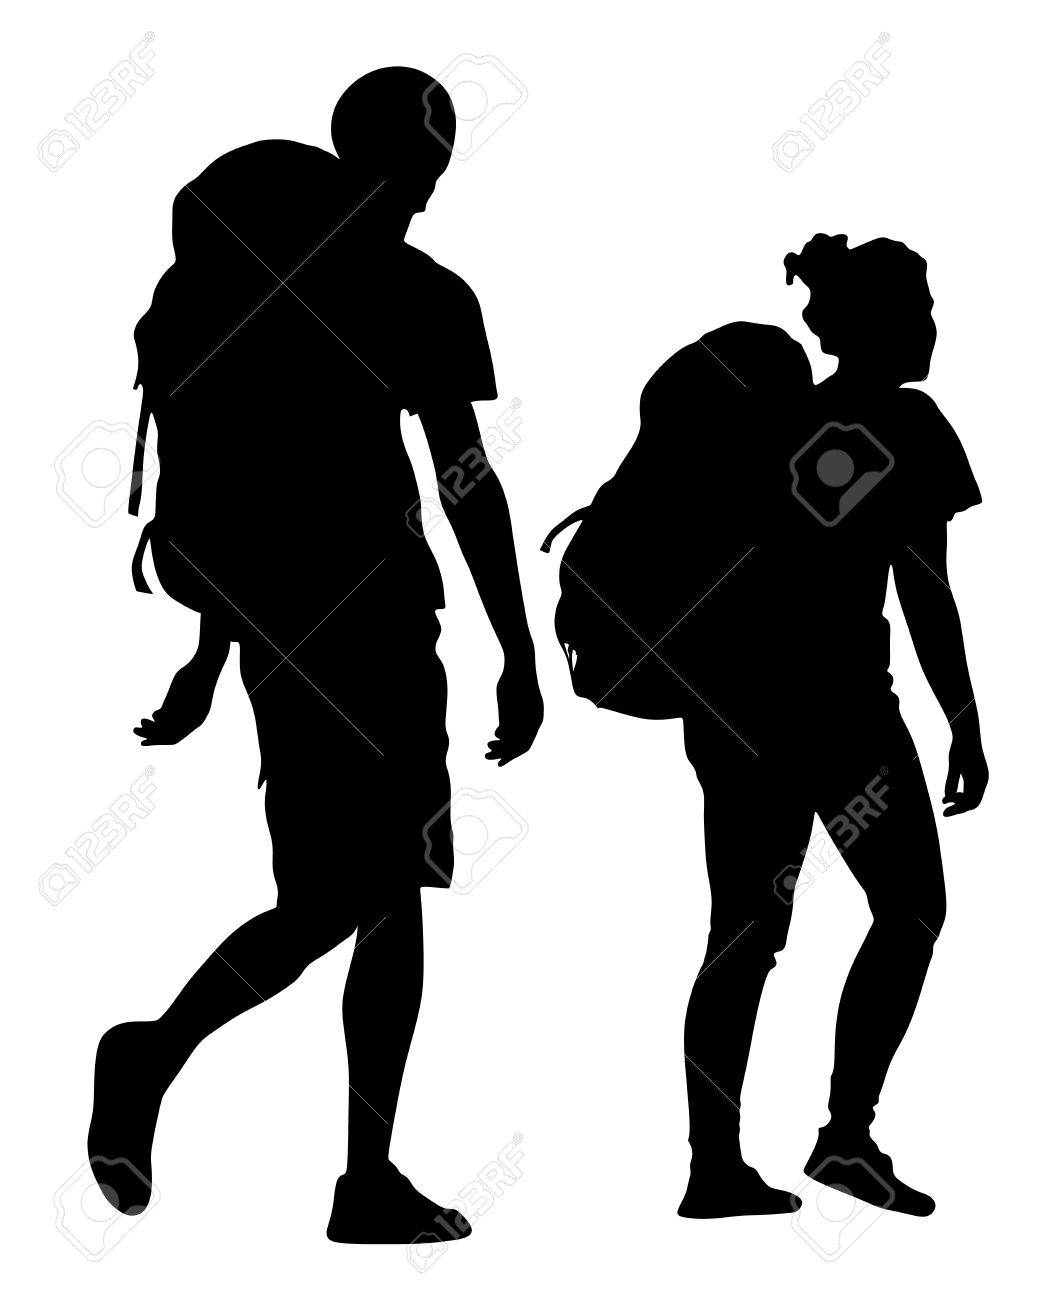 Tourists couple with backpacks vector silhouette illustration isolated on white background. - 70087697